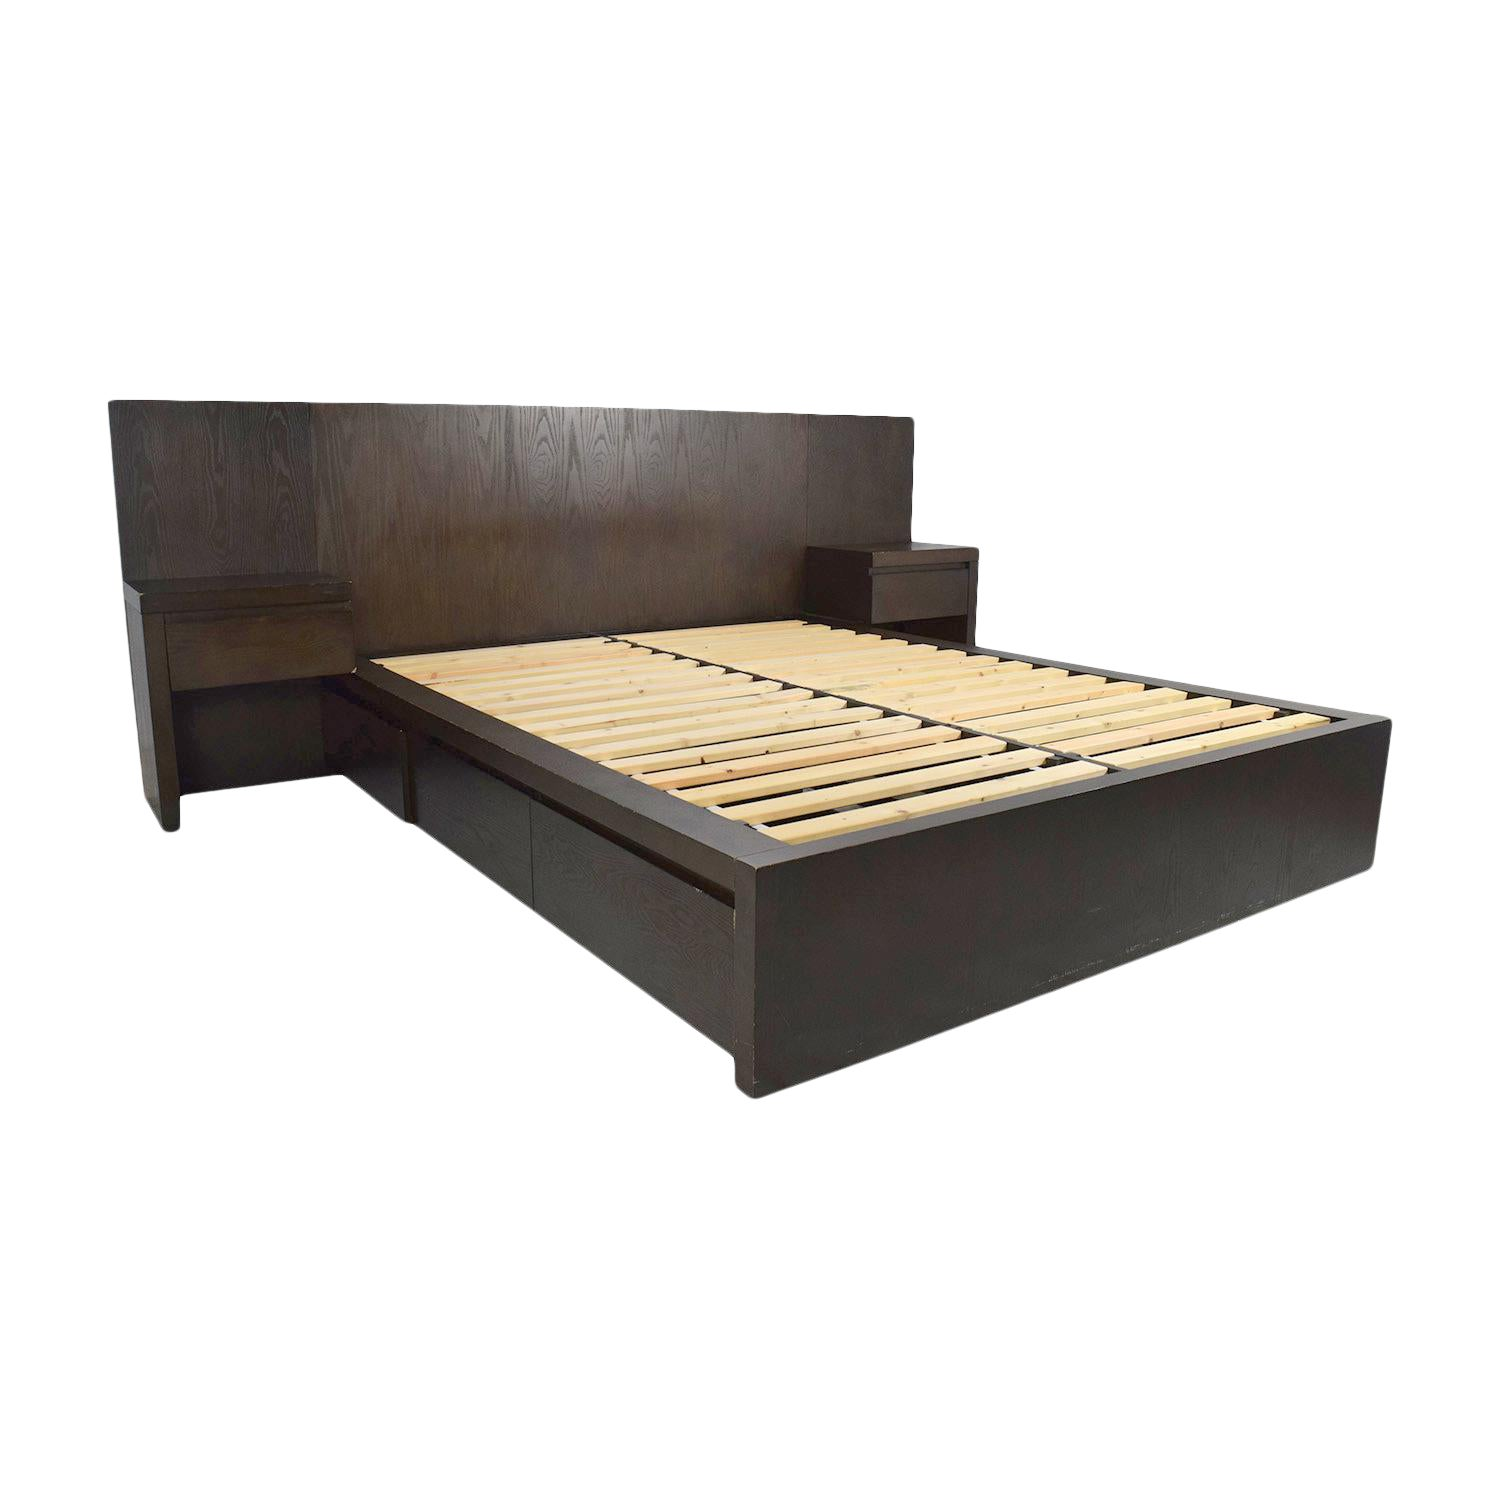 Ebony Stained Oak West Elm Full Size Captains Platform Bed W Storage Drawers Attached Nightstands Chairish